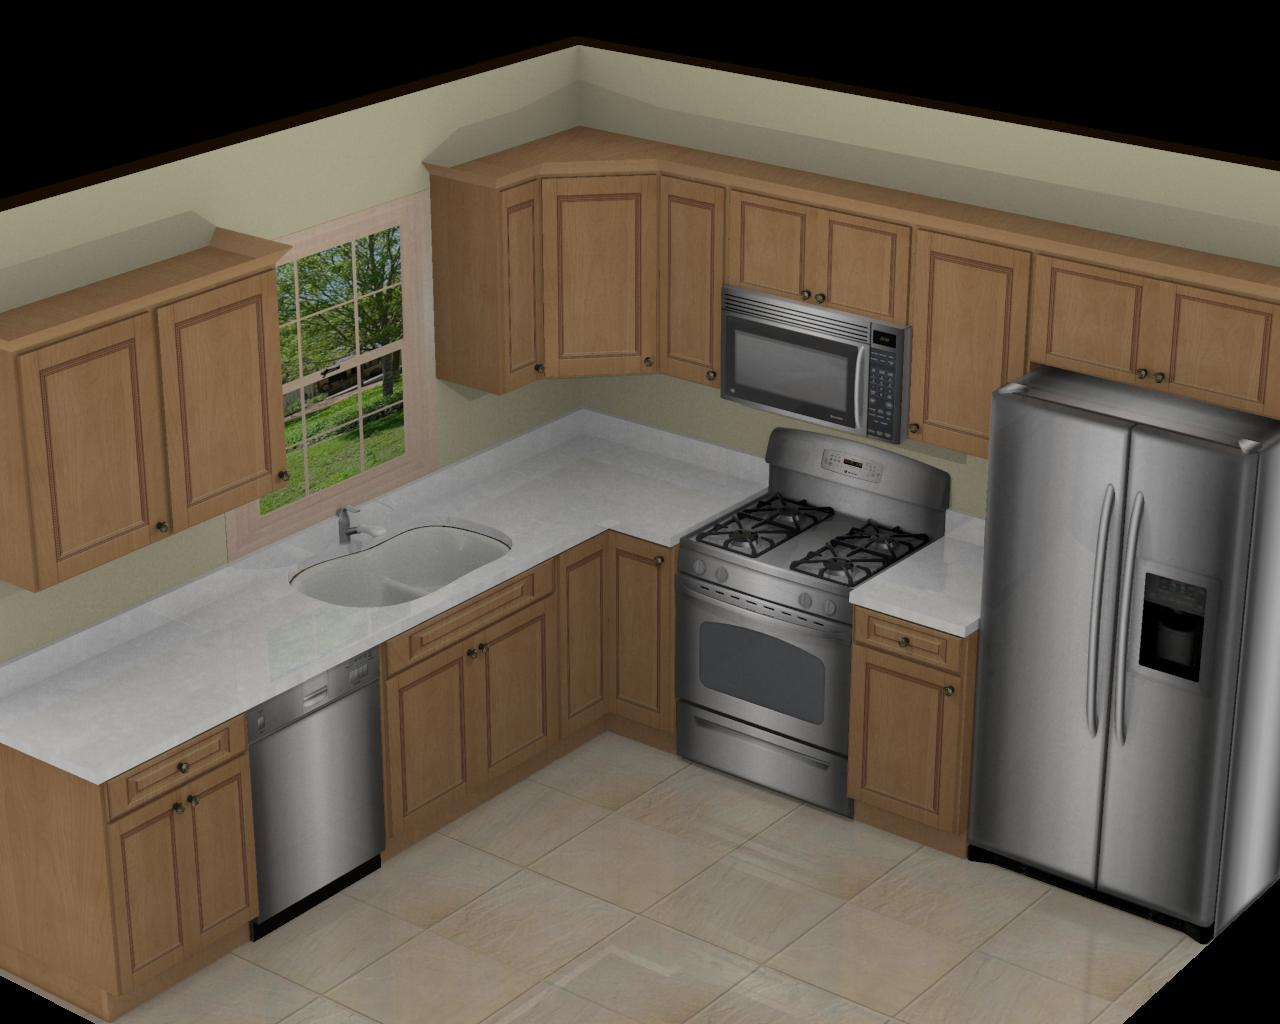 Foundation dezin decor 3d kitchen model design for Kitchen remodel designs pictures